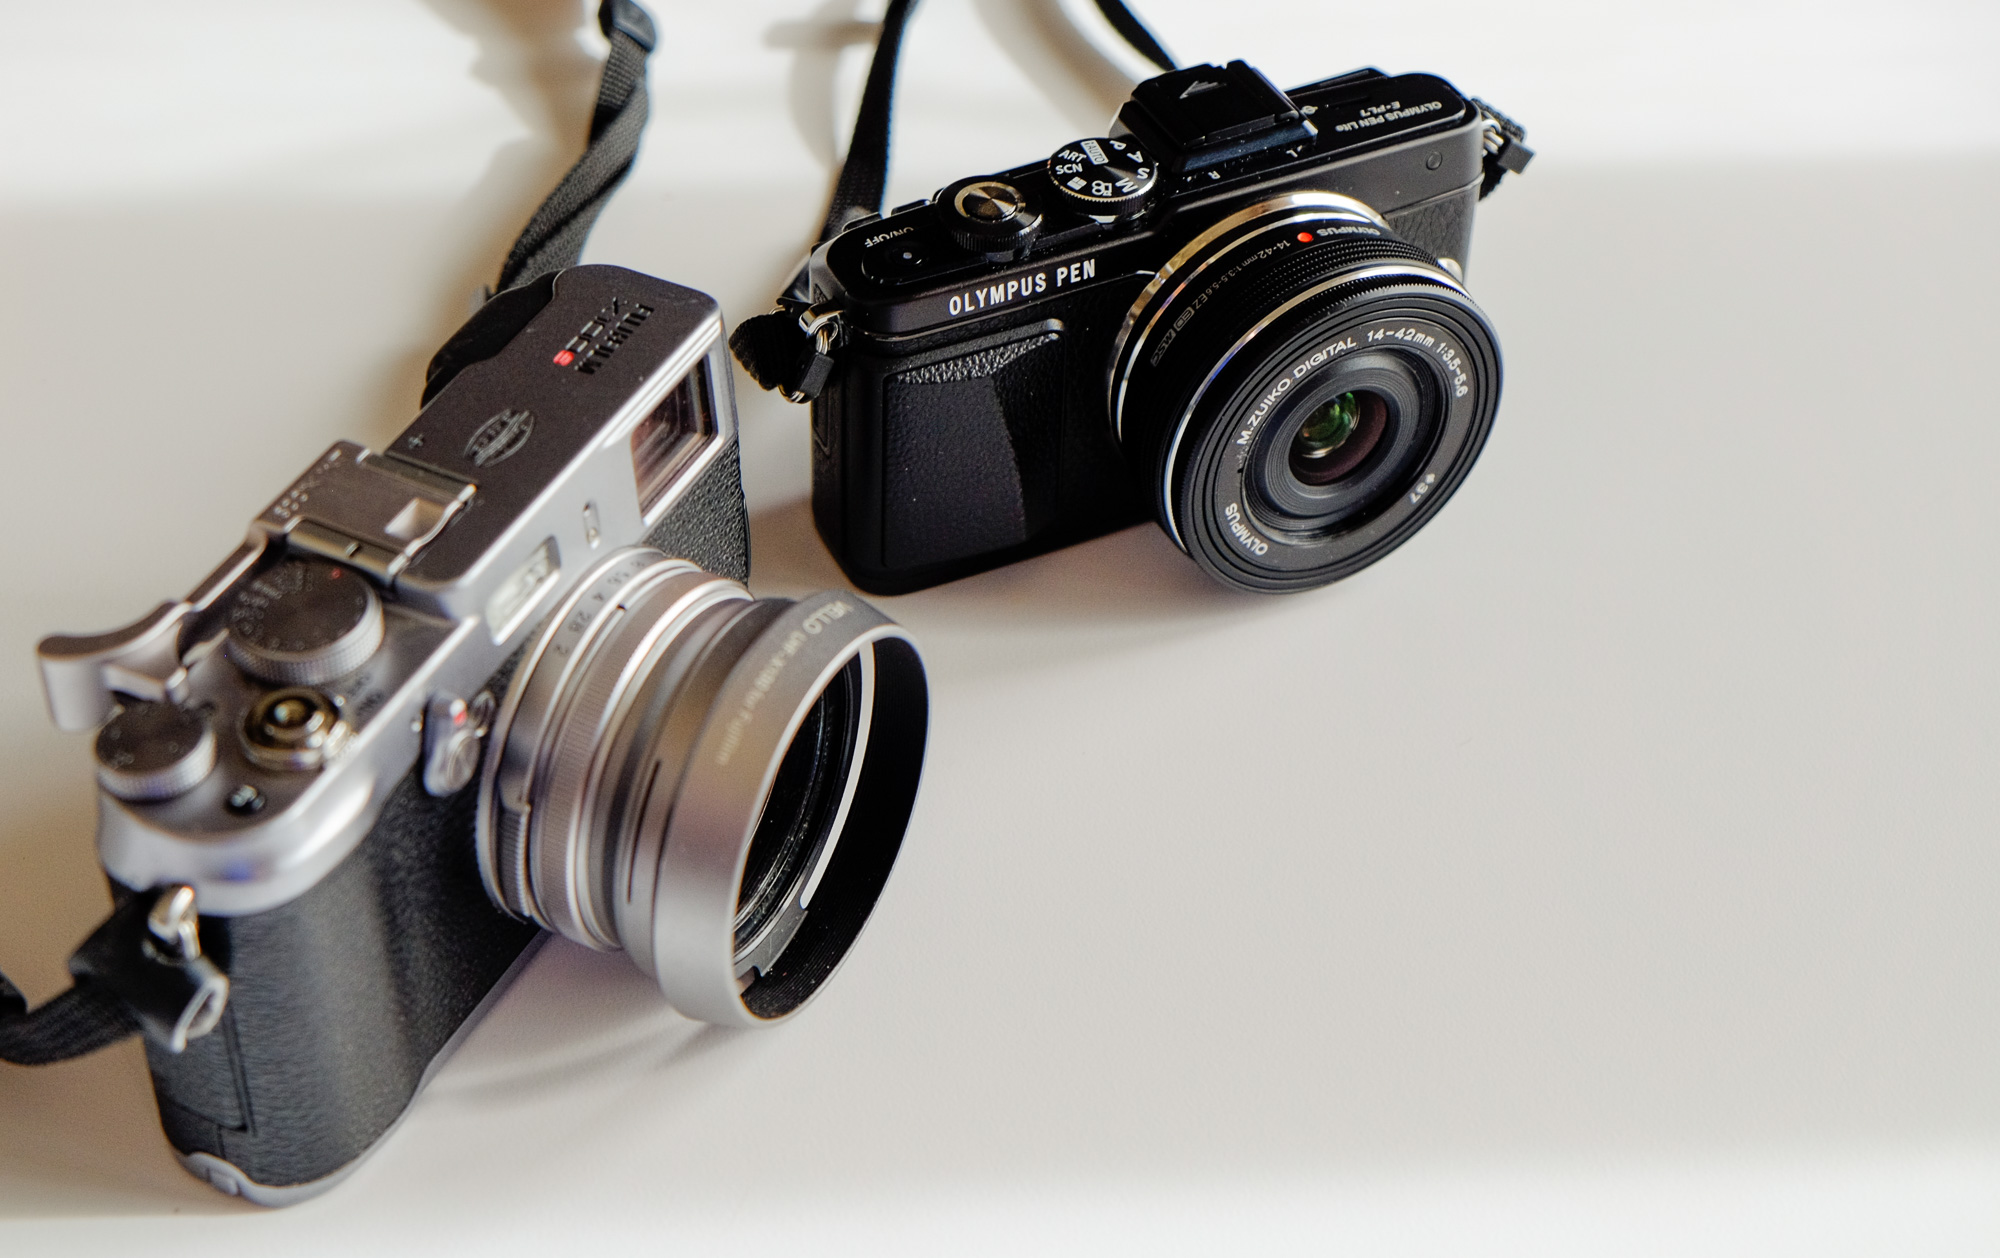 E-PL7 compared to my X100S